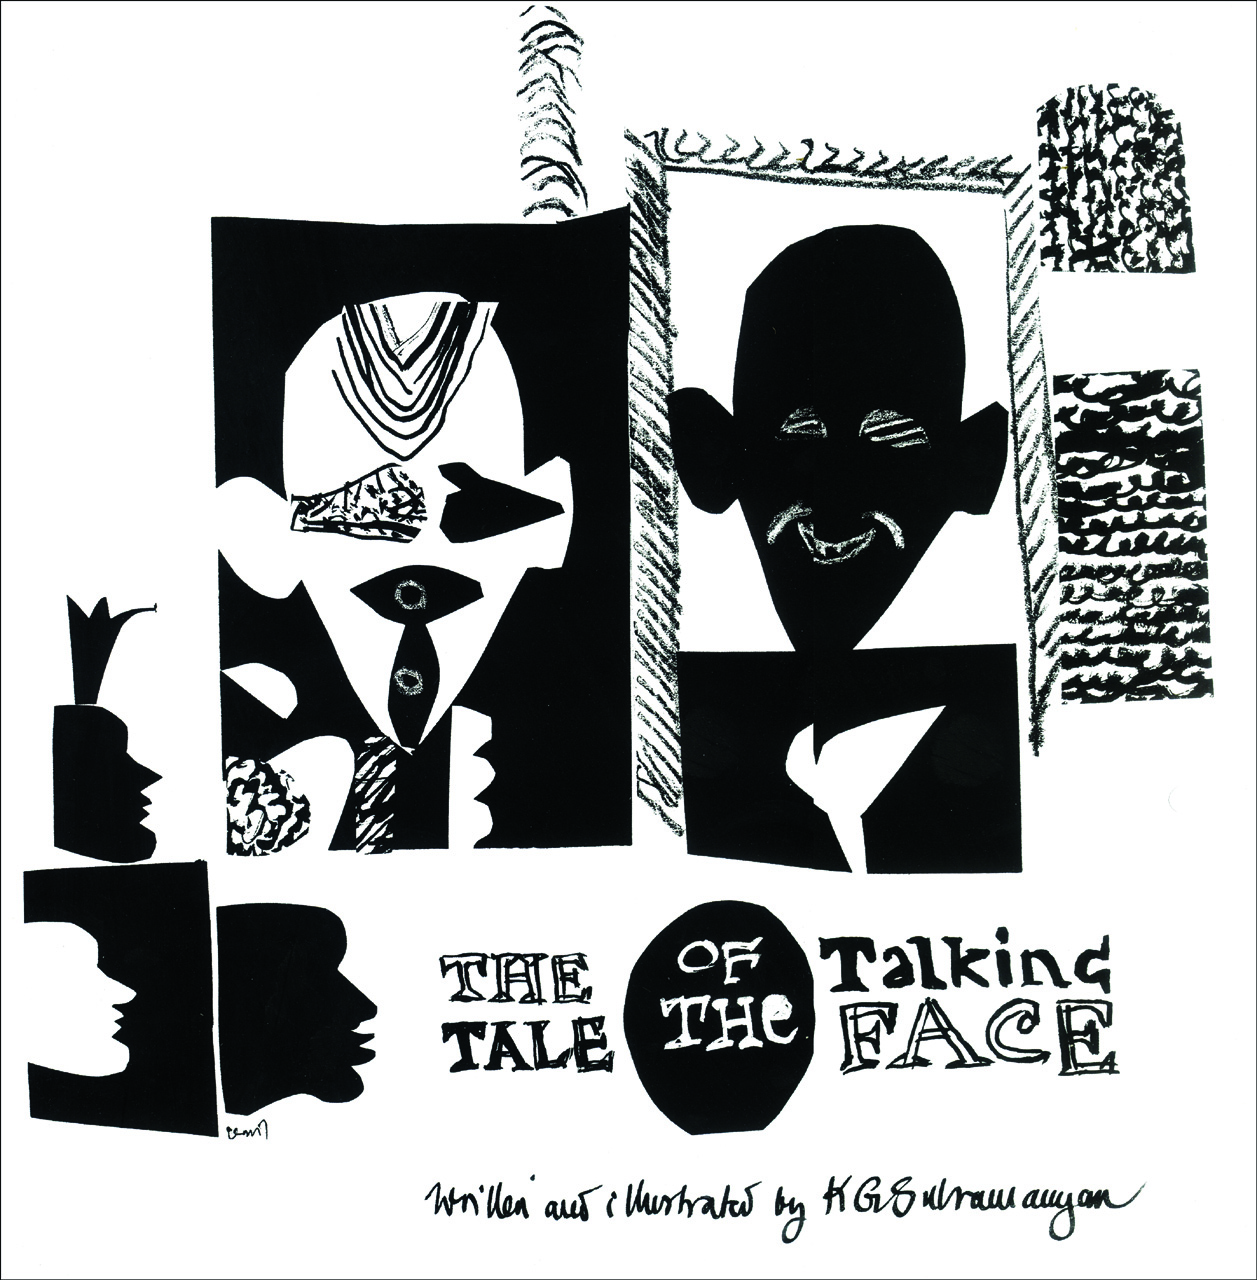 The Tale of the Talking Face by KG Subramanyan